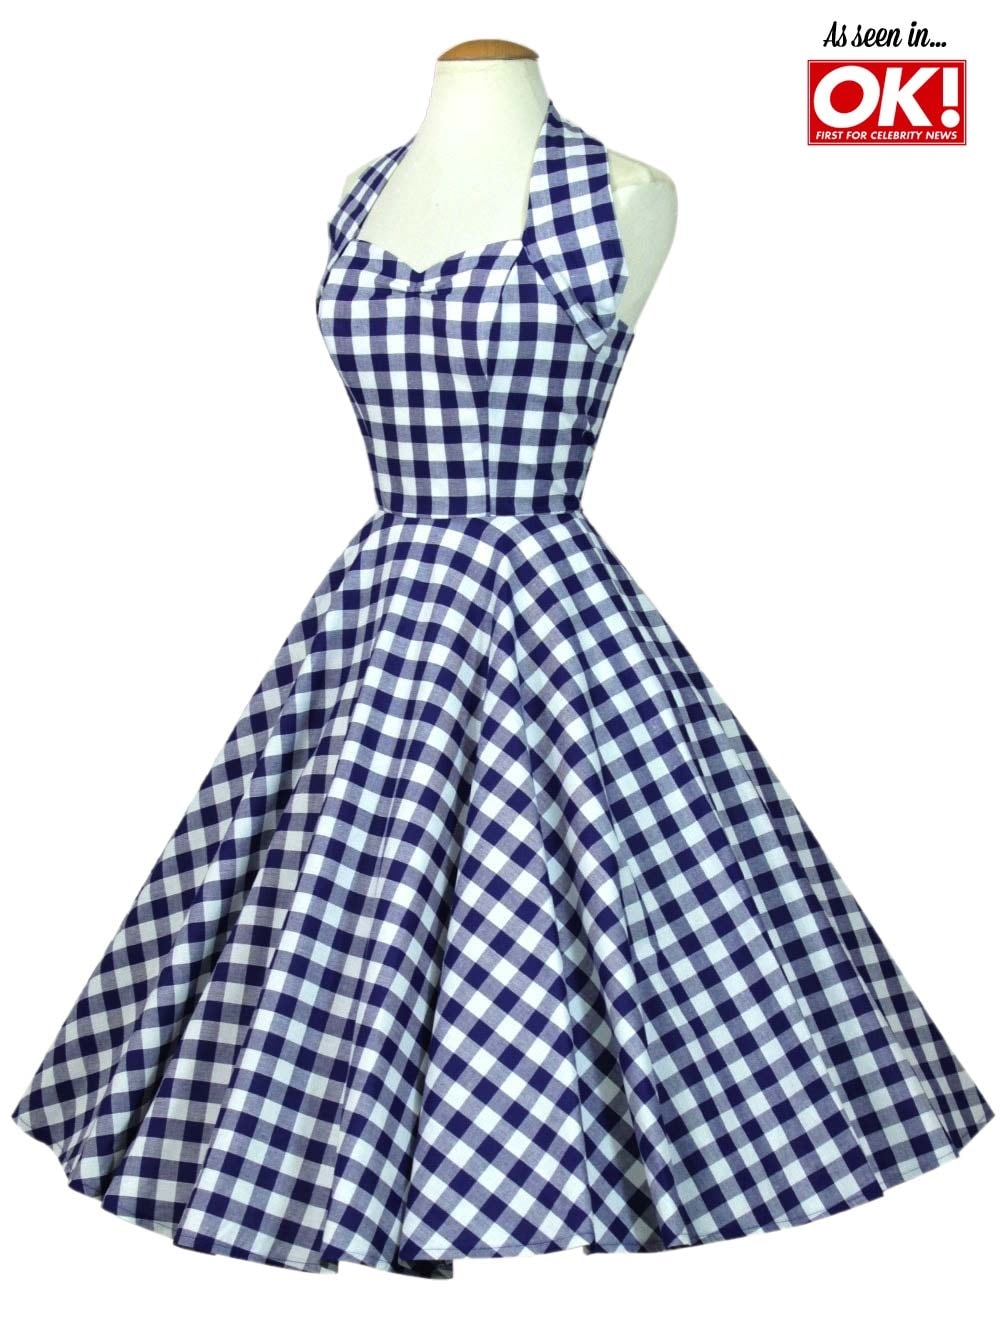 1950s Halterneck Blue Gingham Dress From Vivien Of Holloway